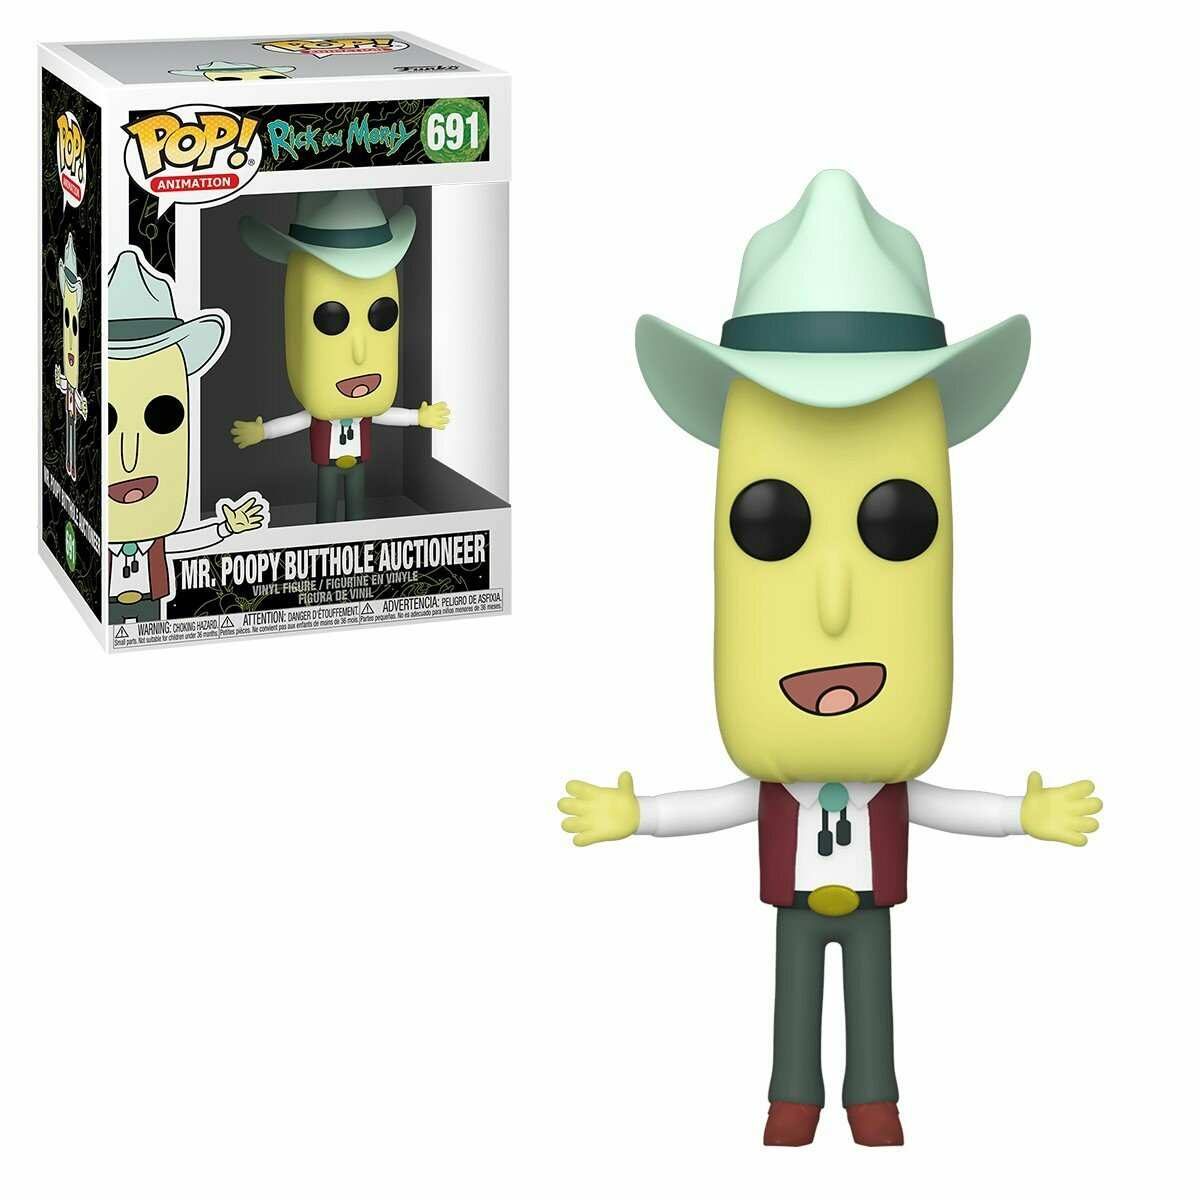 Funko Rick and Morty Mr. Poopy Butthole Auctioneer Pop! Vinyl Figure